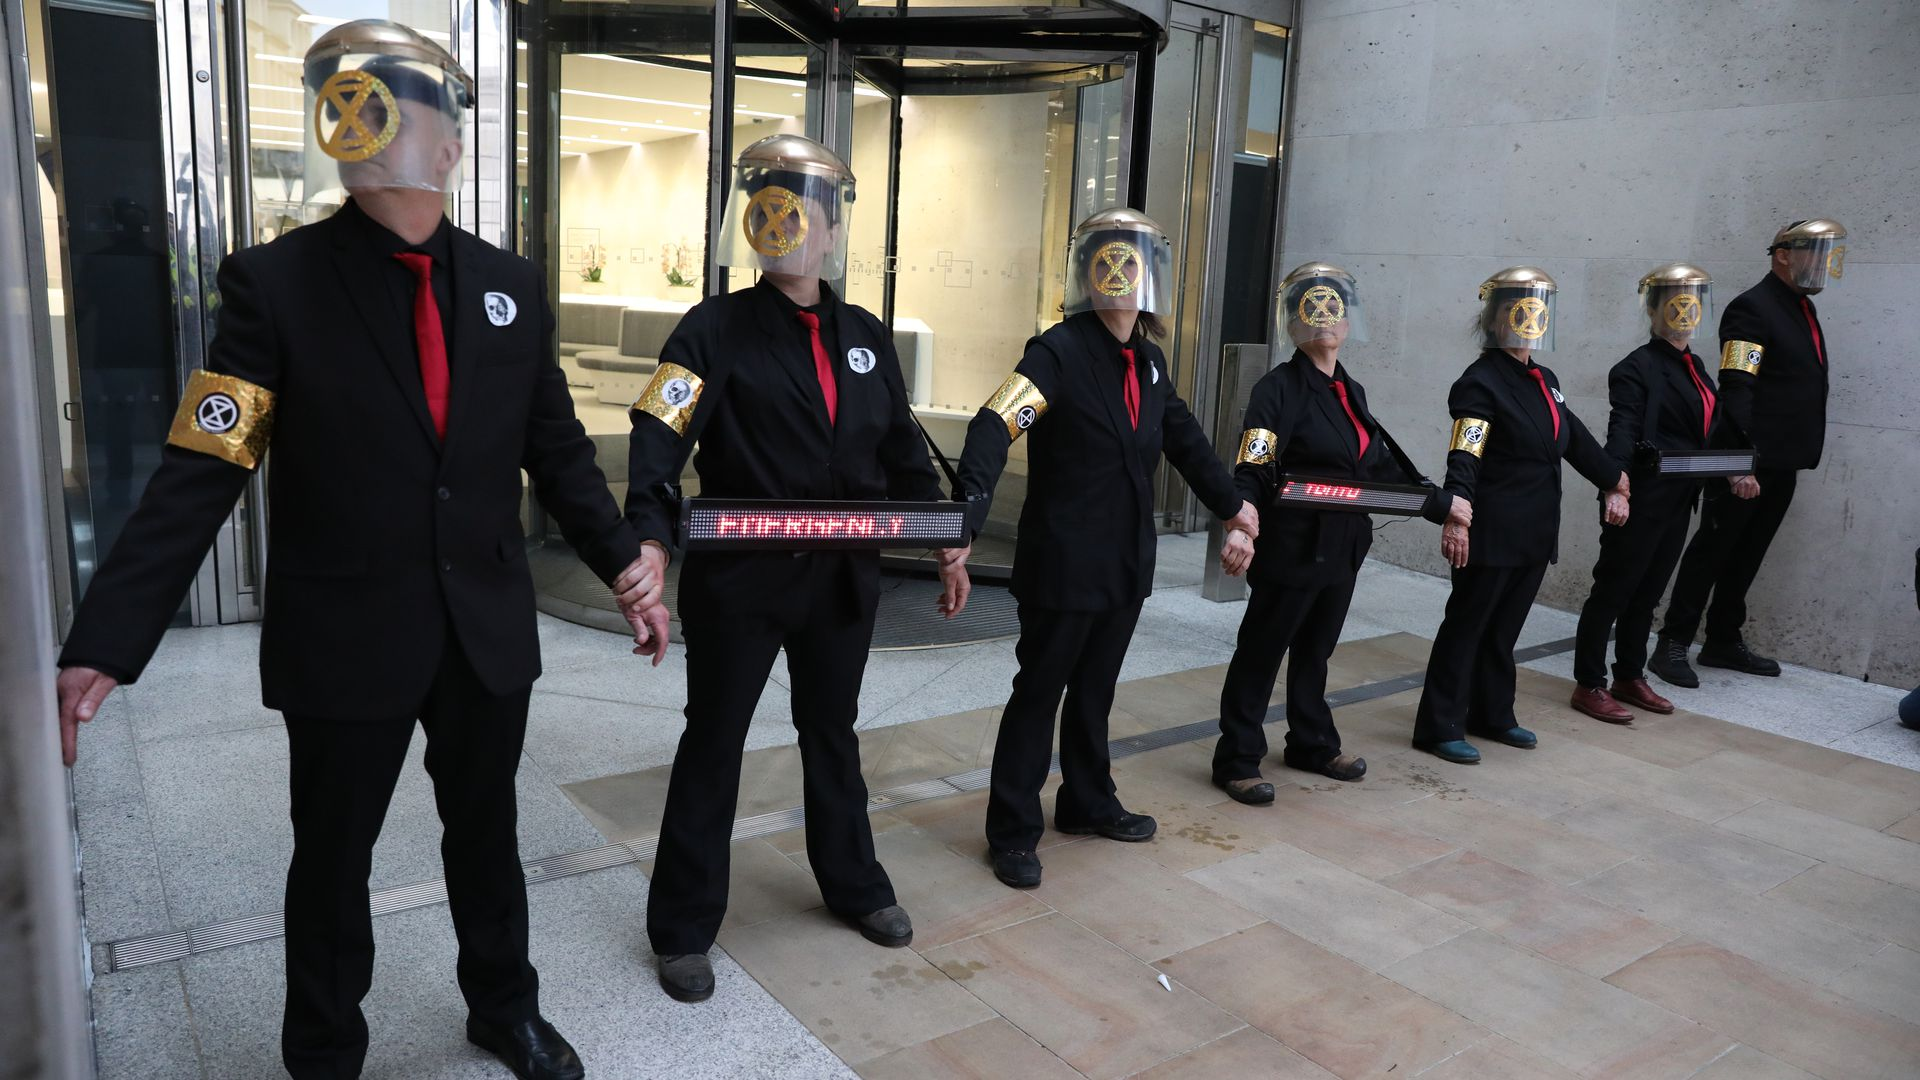 Extinction Rebellion protesters who have glued themselves to the entrances of the London Stock Exchange.